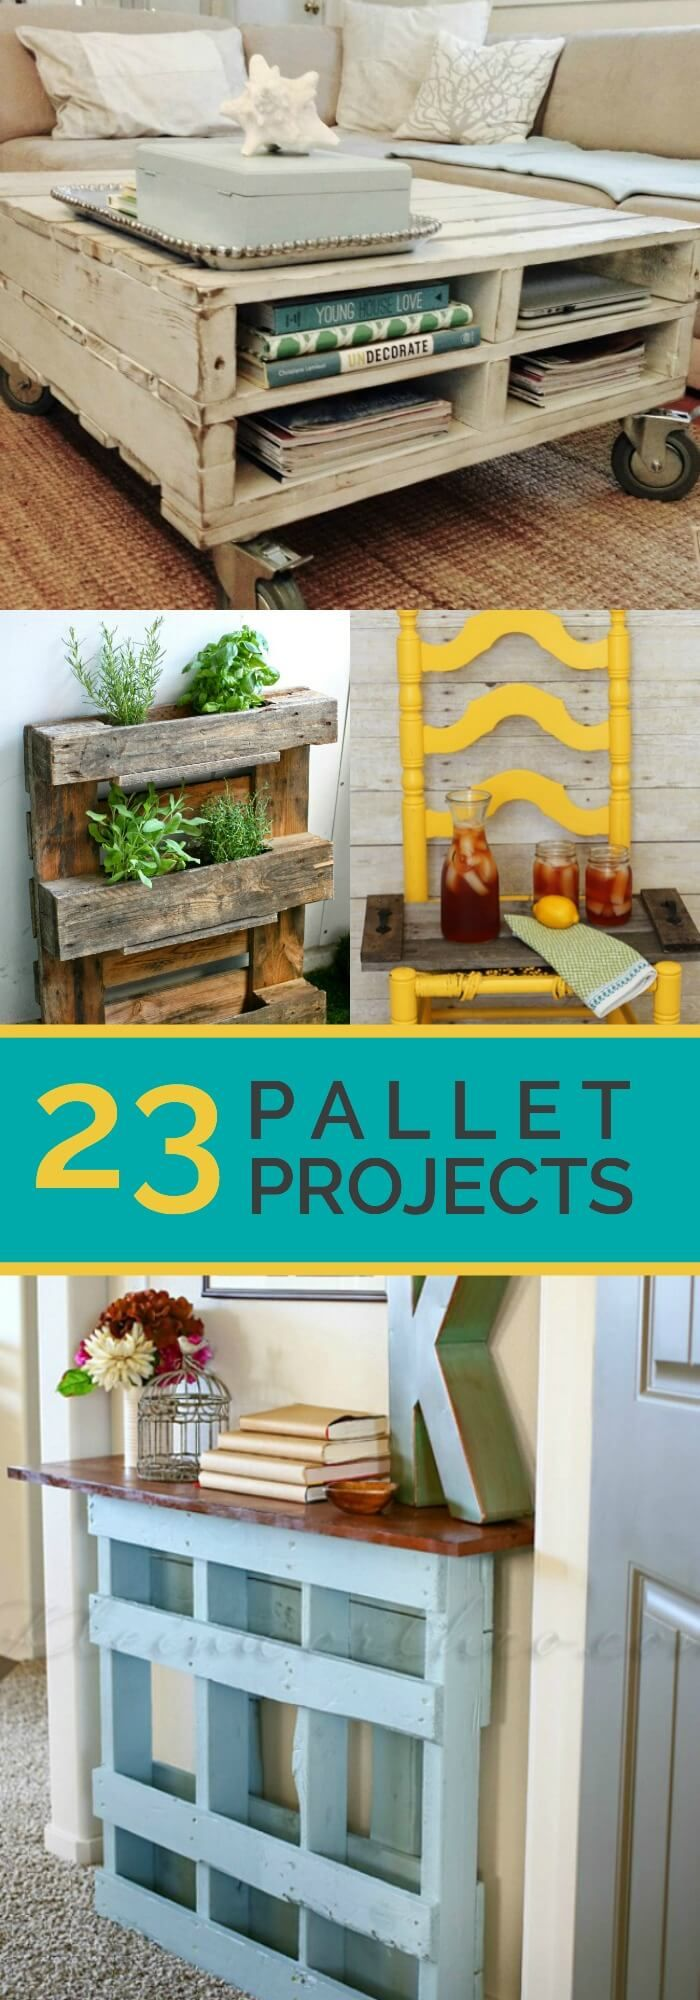 23 Awesome DIY Wood Pallet Ideas 176